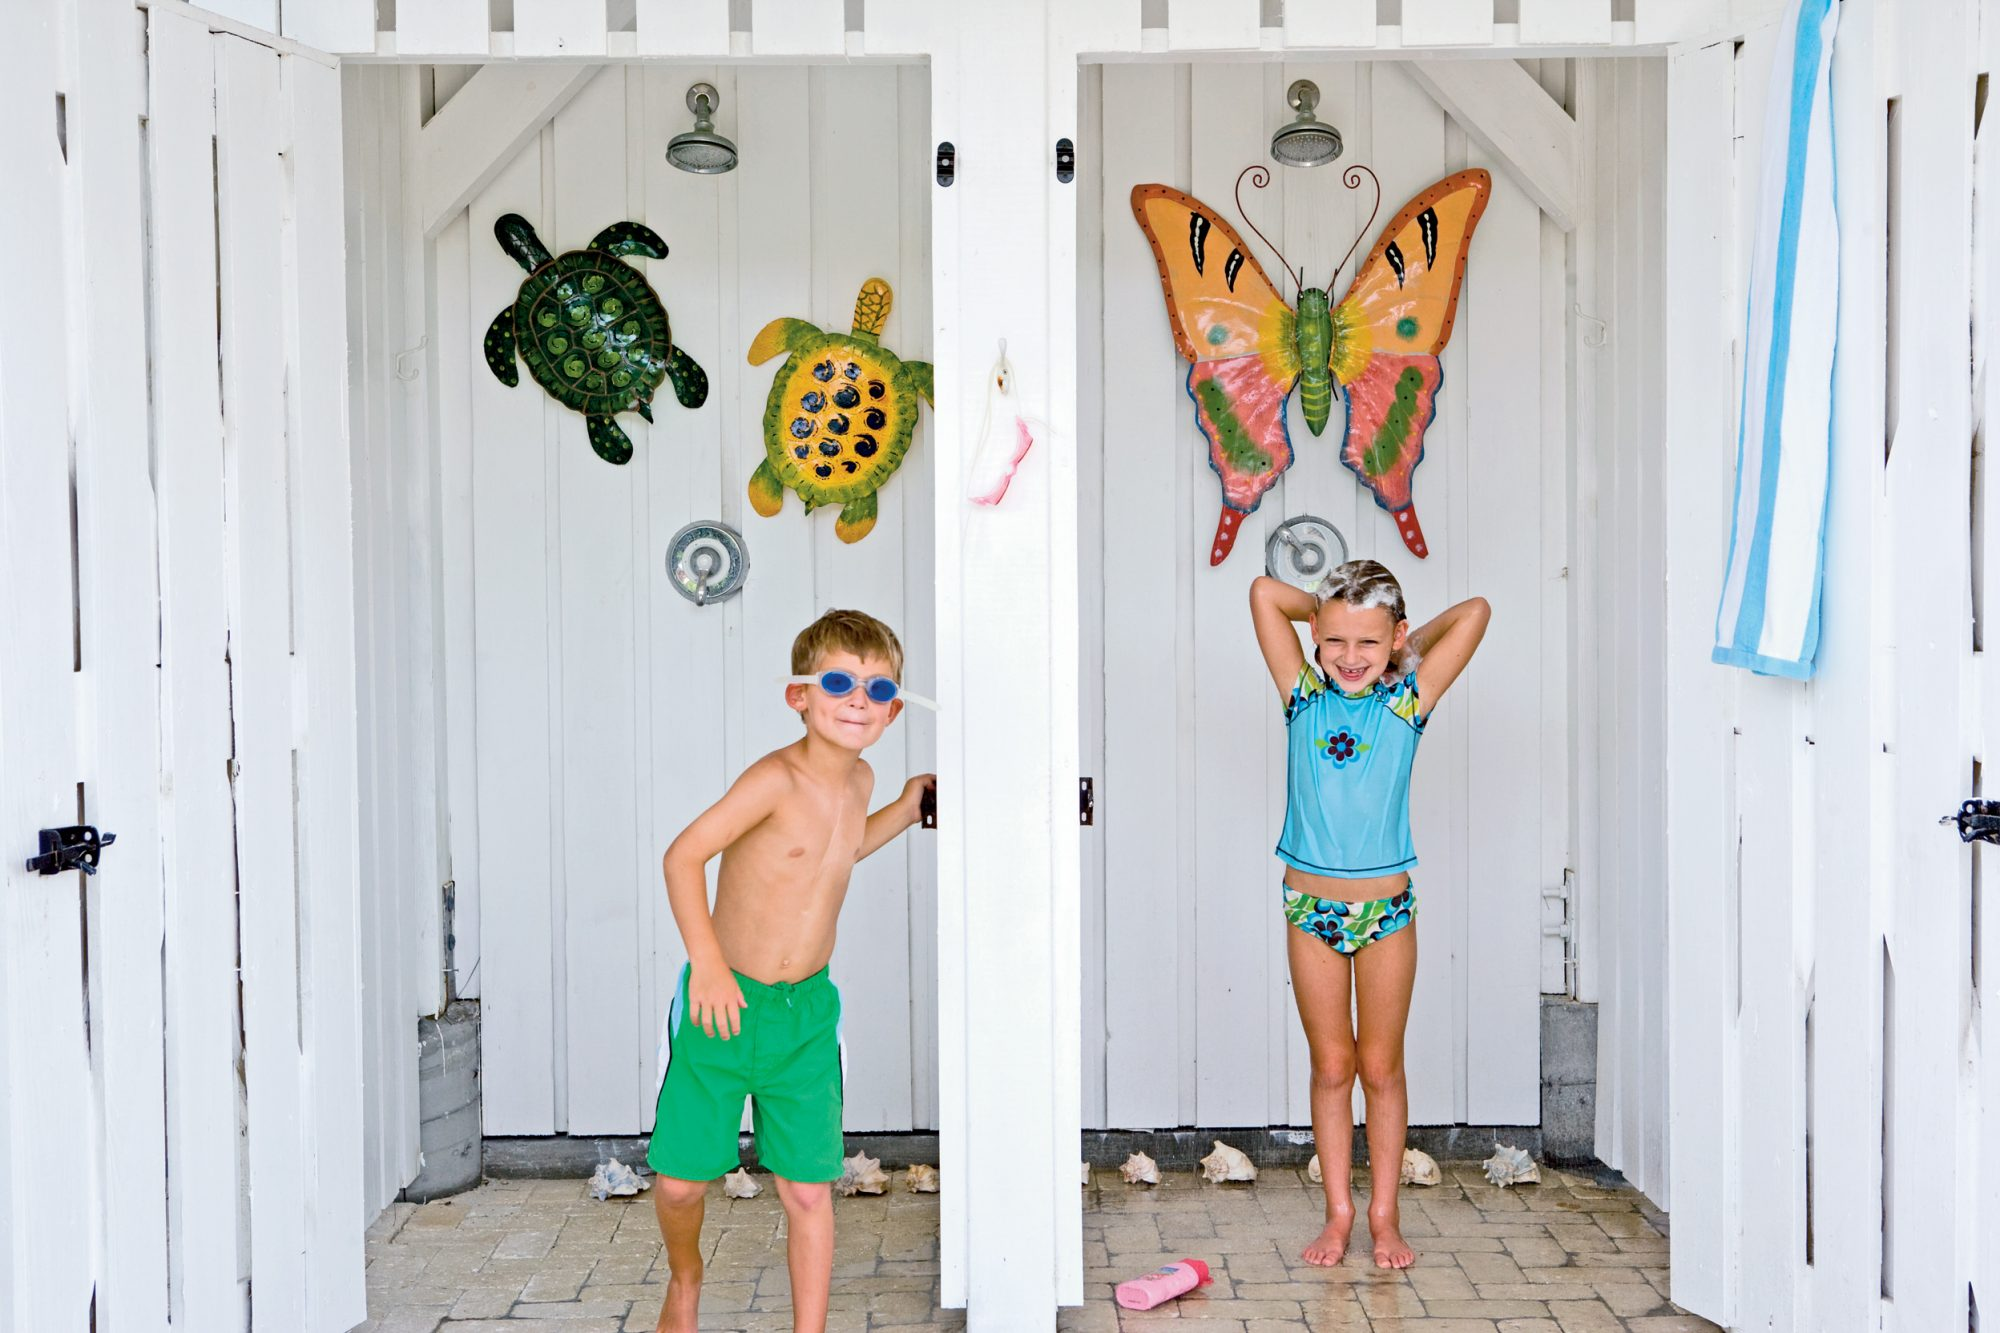 For beach homes that host large groups, multiple outdoor shower stalls boost the convenience factor exponentially. Here, board-and-batten walls and locking doors give a finished look and offer privacy. Metal hooks for suits, towels, and gear complete the